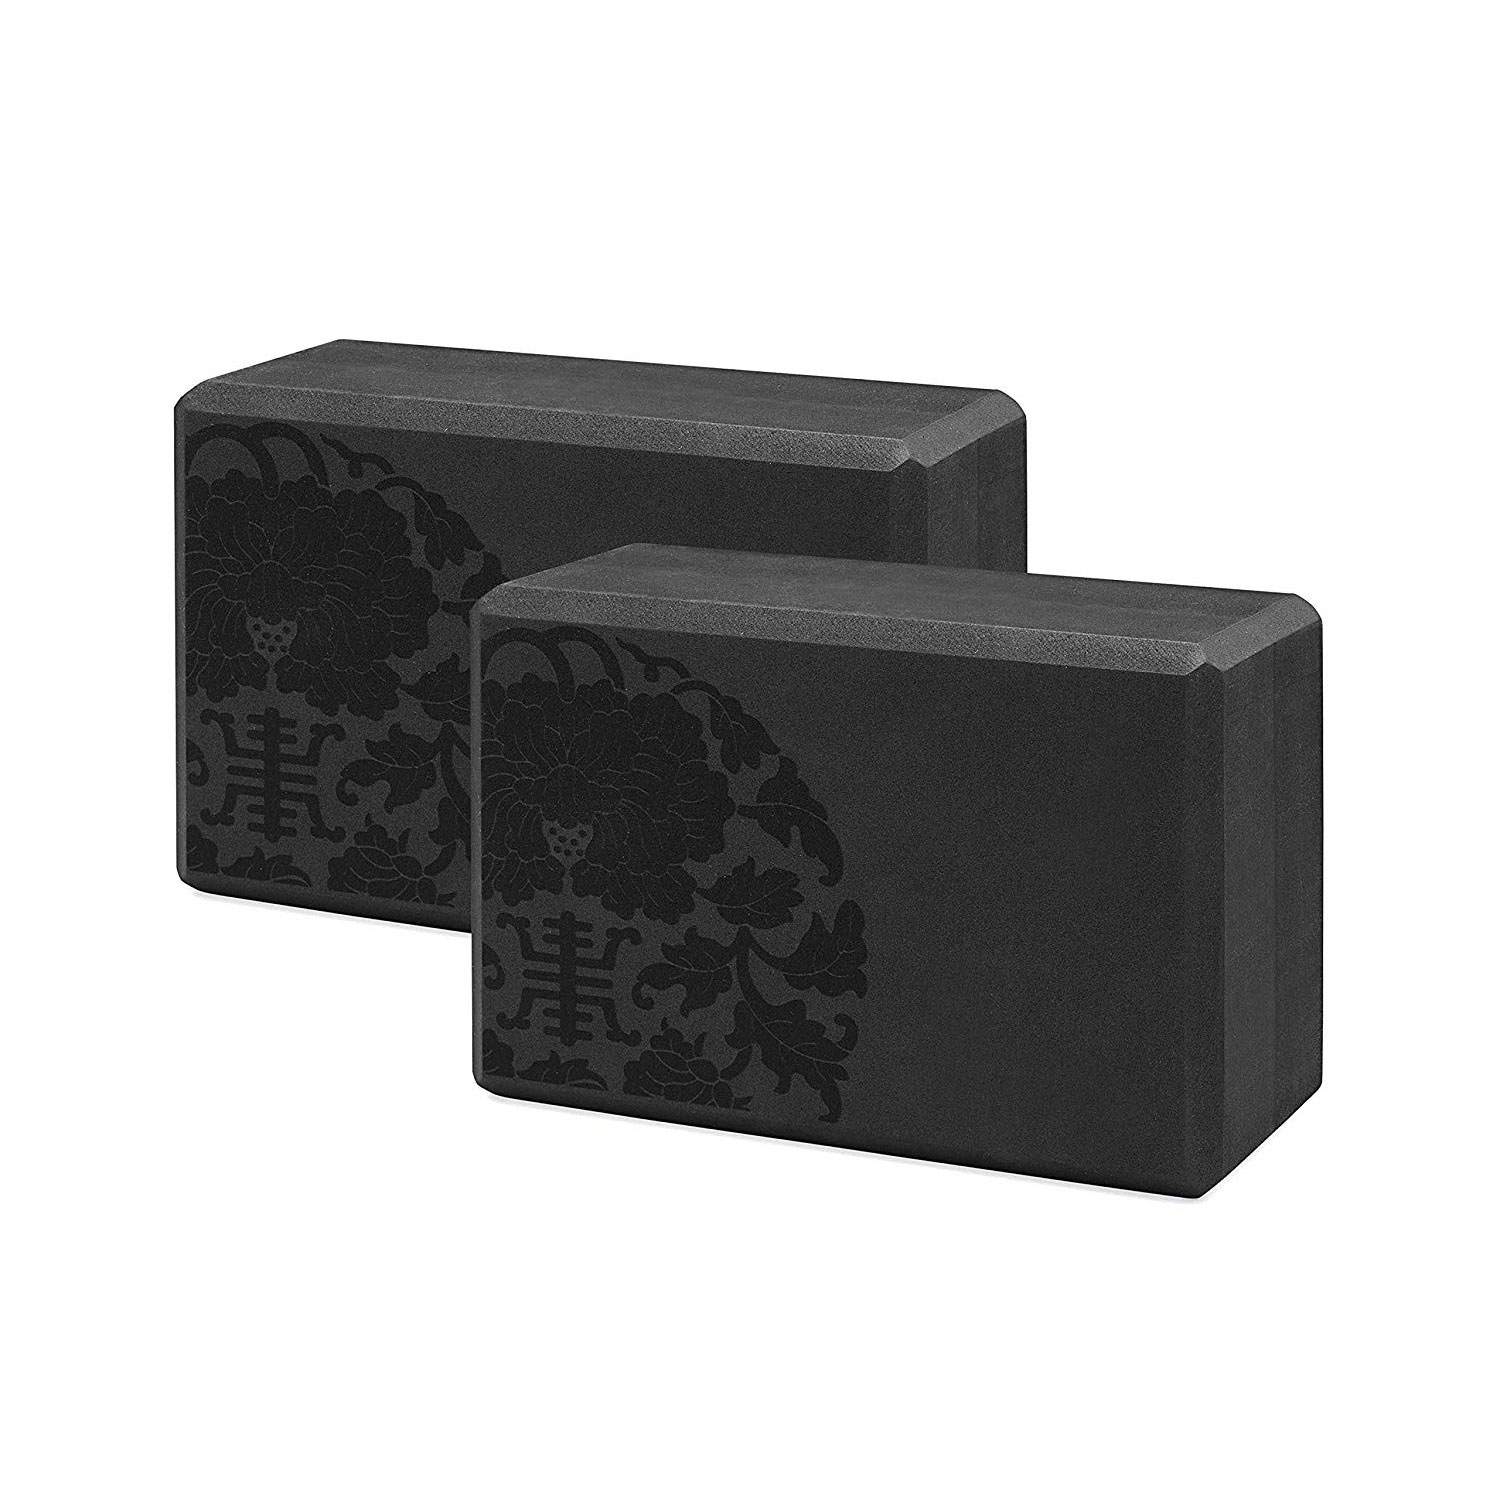 Gaiam Essentials Yoga Black (Set of 2)